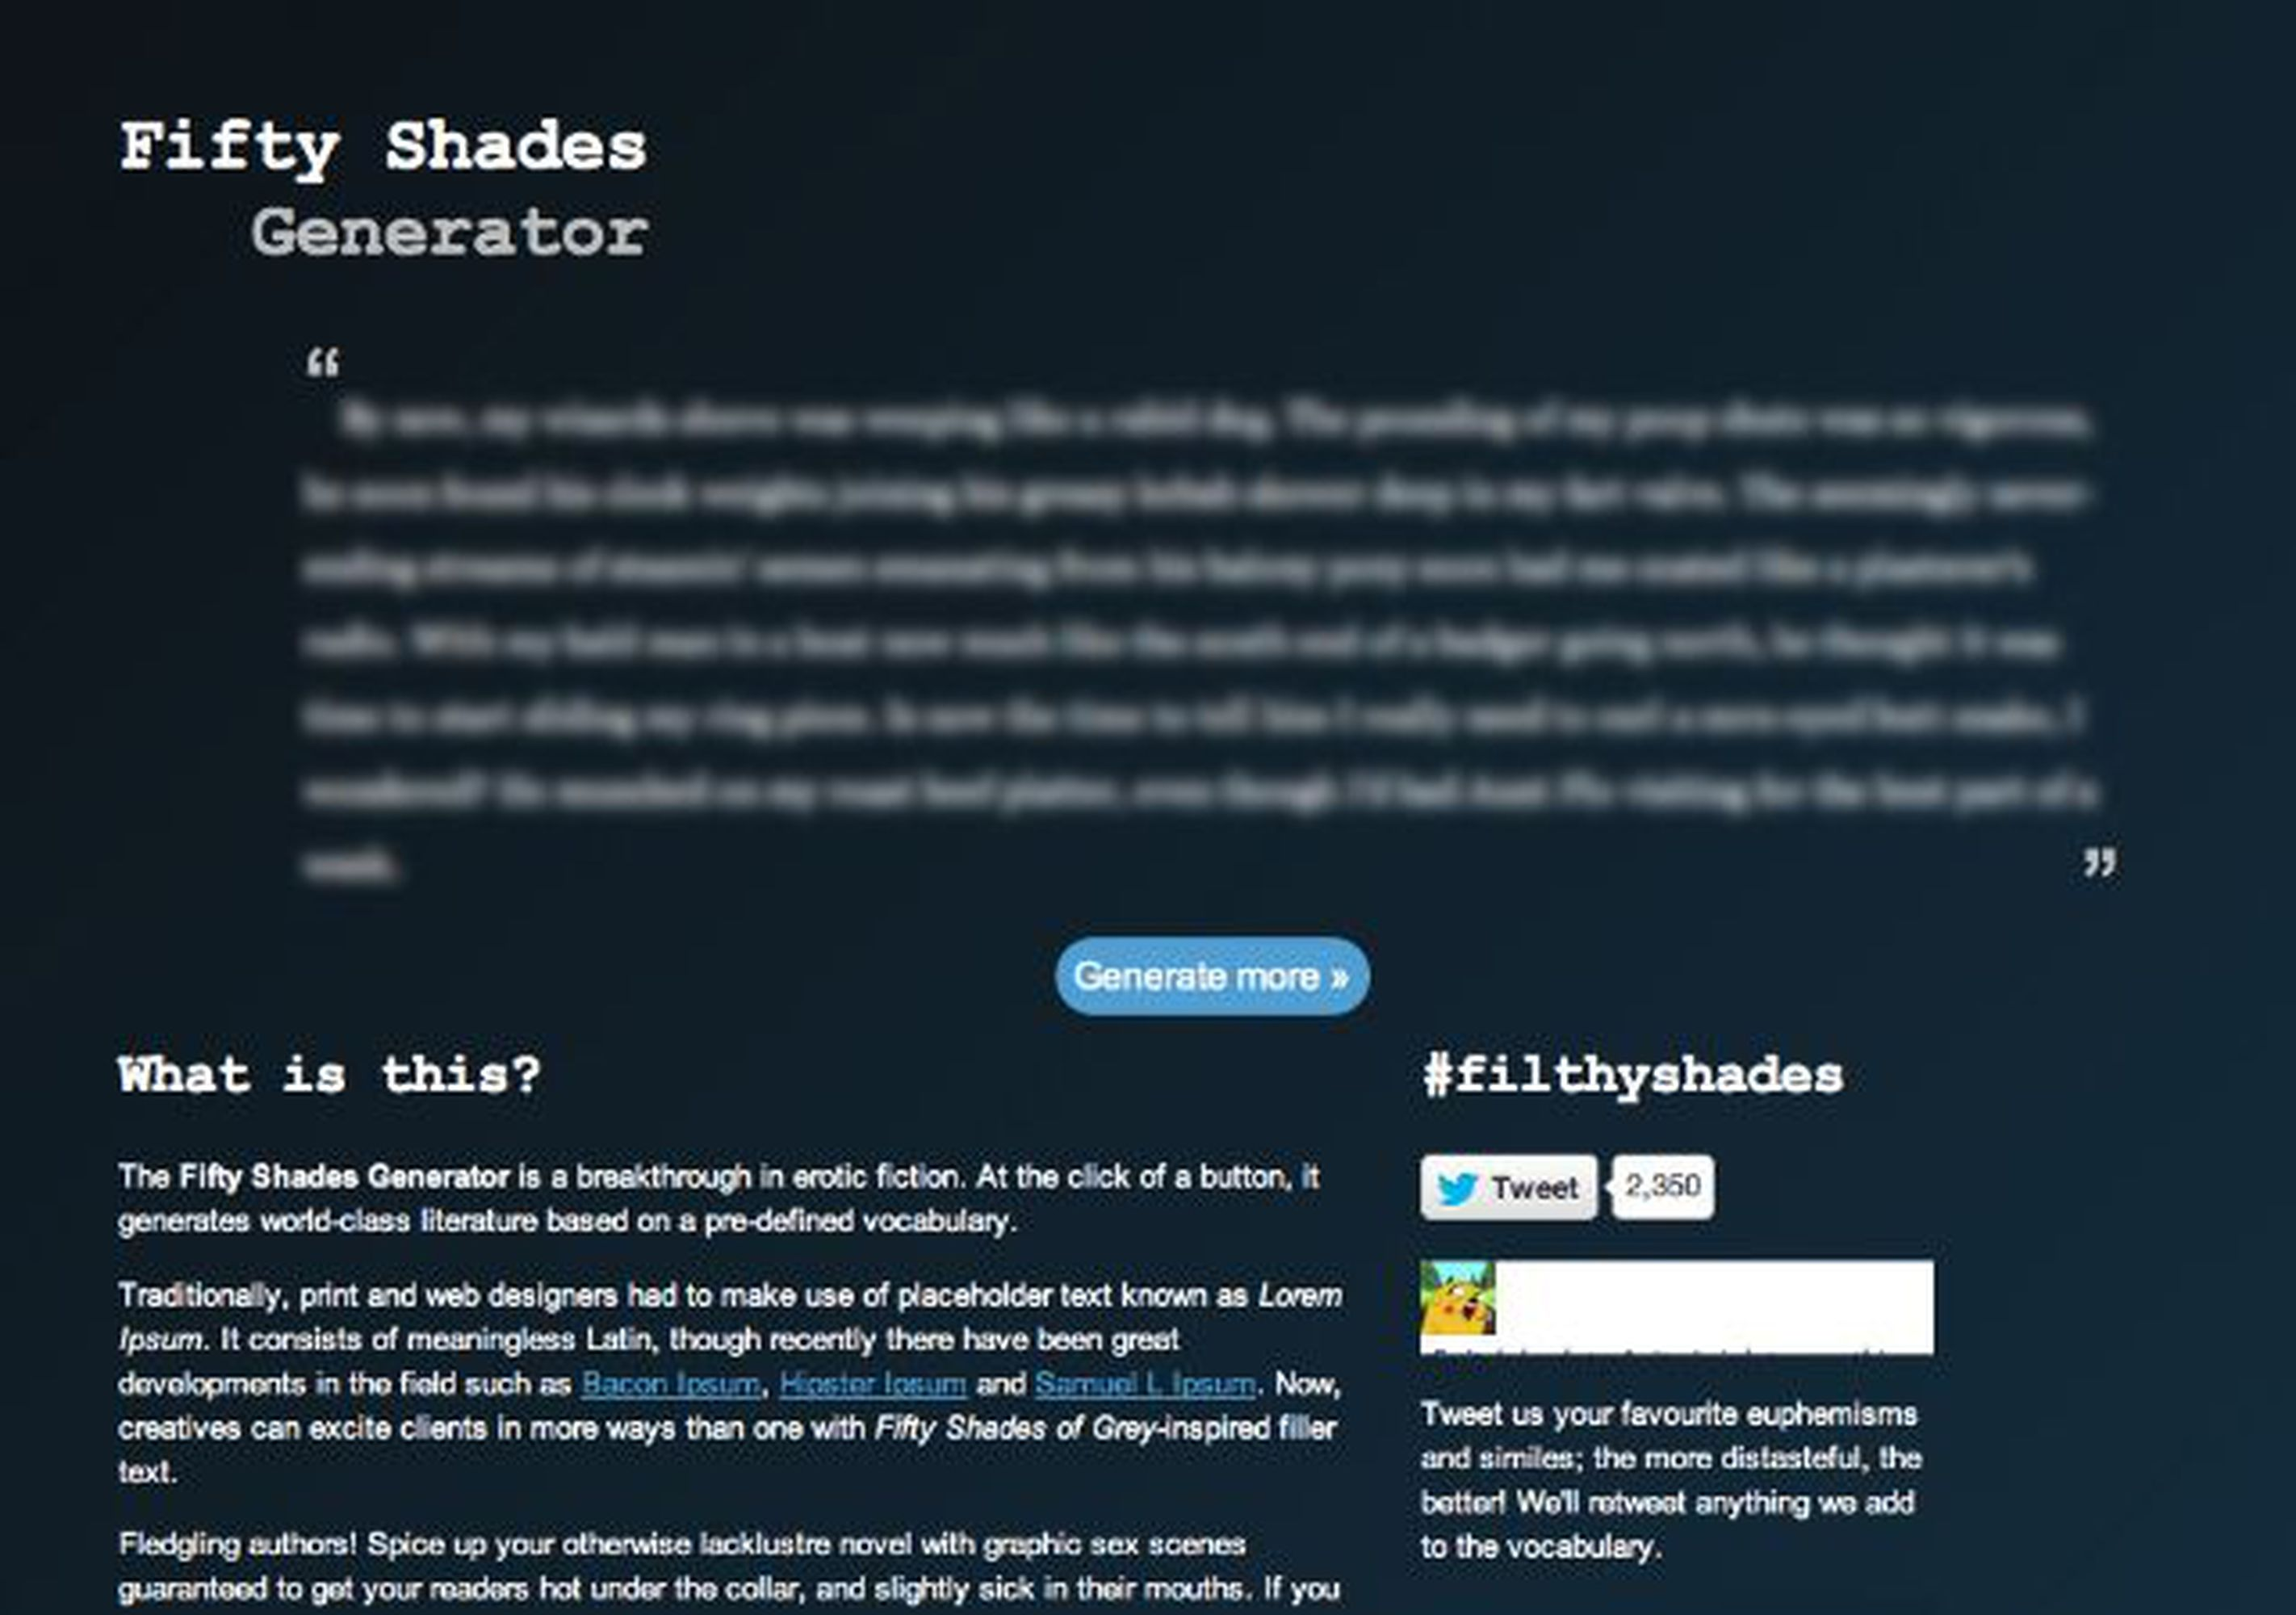 fifty shades generator spices